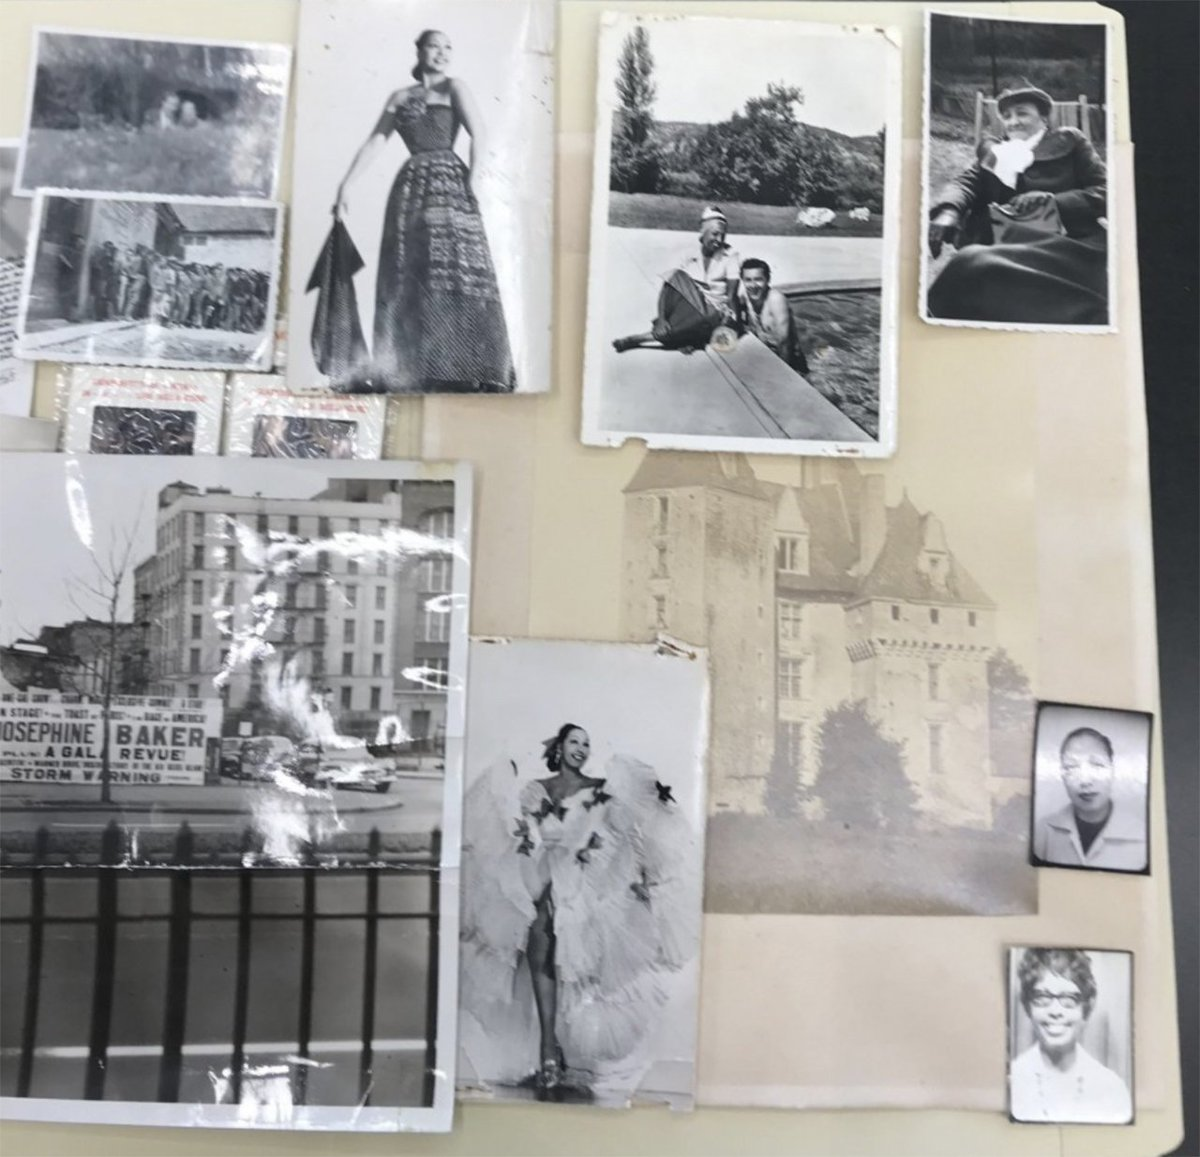 Dr. Jeremy McMillan conducted research at #Emory's @EmoryRoseMARBL and wrote about the experience and how it influenced his research project on jazz and modernism. http://bit.ly/BlogJeremyMcMillan… #ArchivalResearch #JosephineBaker #ErwinSchulhoff